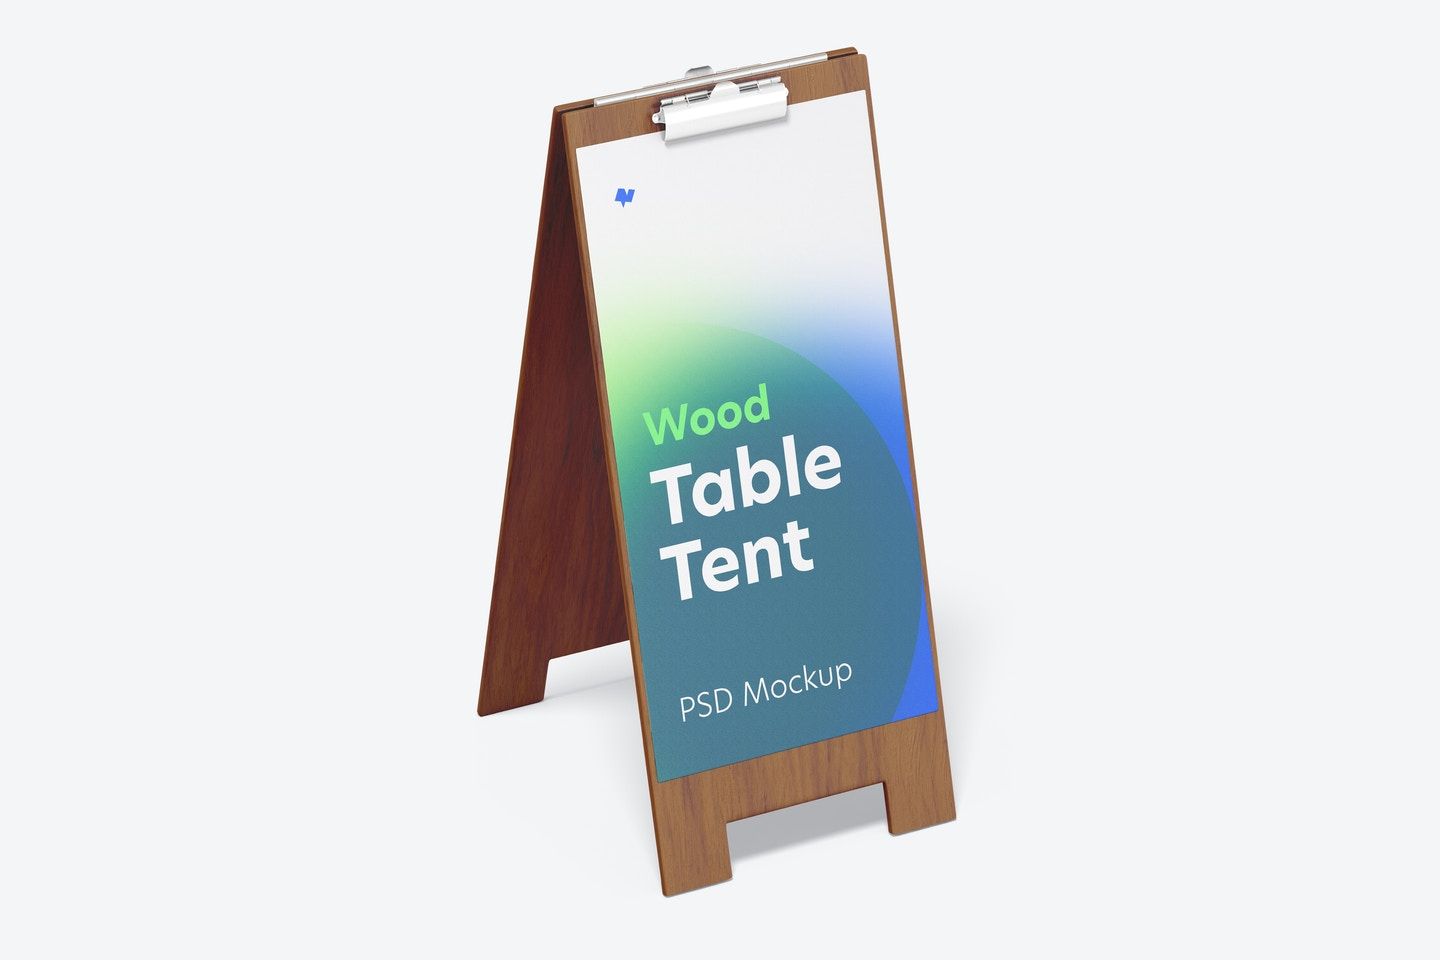 Wood Table Tent with Clip Mockup